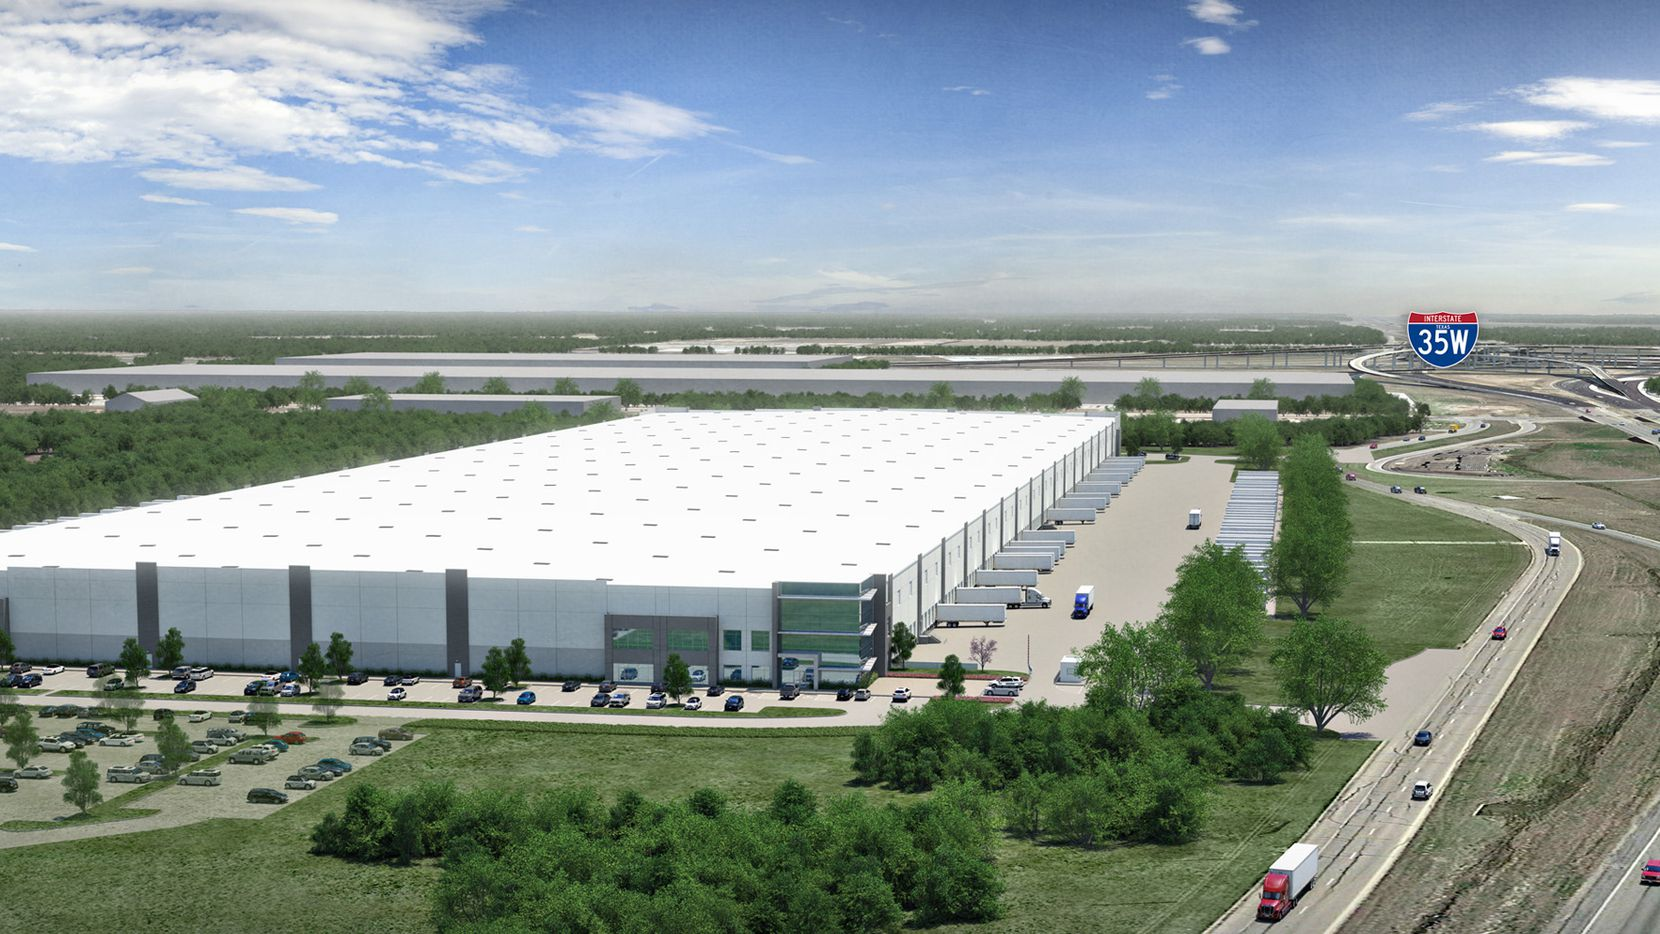 Hunt Southwest Real Estate plans to build a 1 million square foot speculative warehouse project in North Fort Worth.